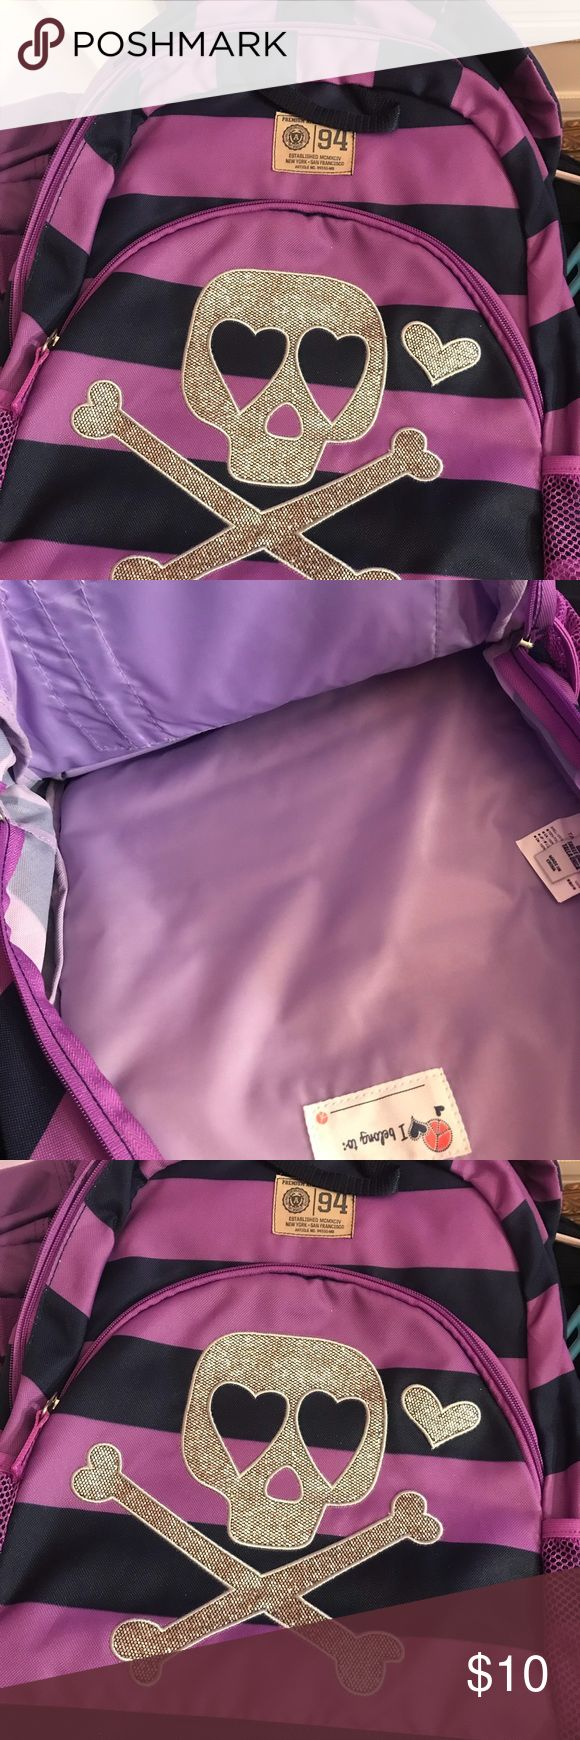 Old Navy Purple Backpack New Backpack with Tags Old Navy Accessories Bags